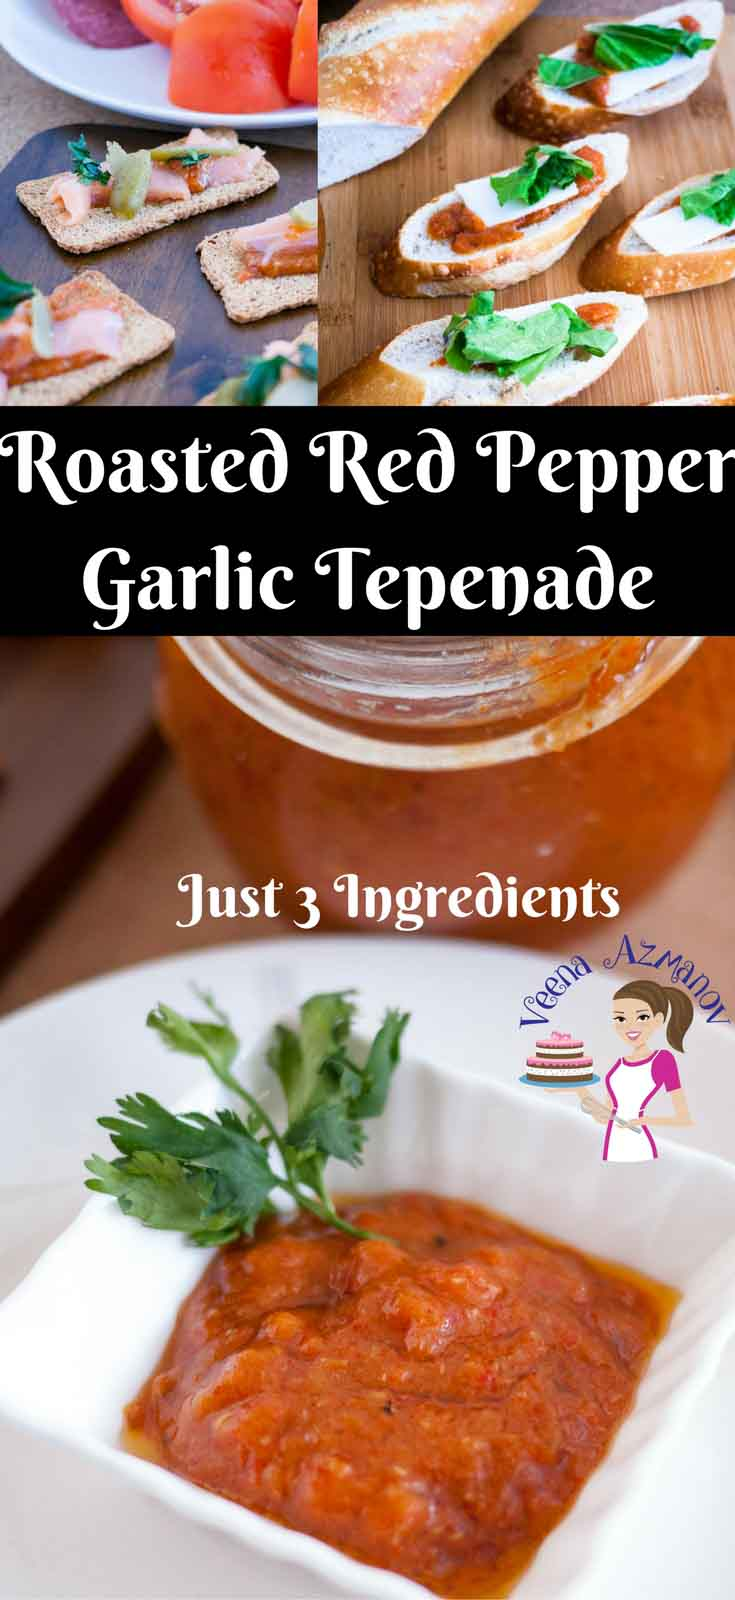 A tepenade is a must have on hand for easy sandwich spreads, tortilla wraps and appetizers. This roasted red pepper garlic tepenade is our family favorite, super easy, quick and simple to make. You will be totally addicted to it